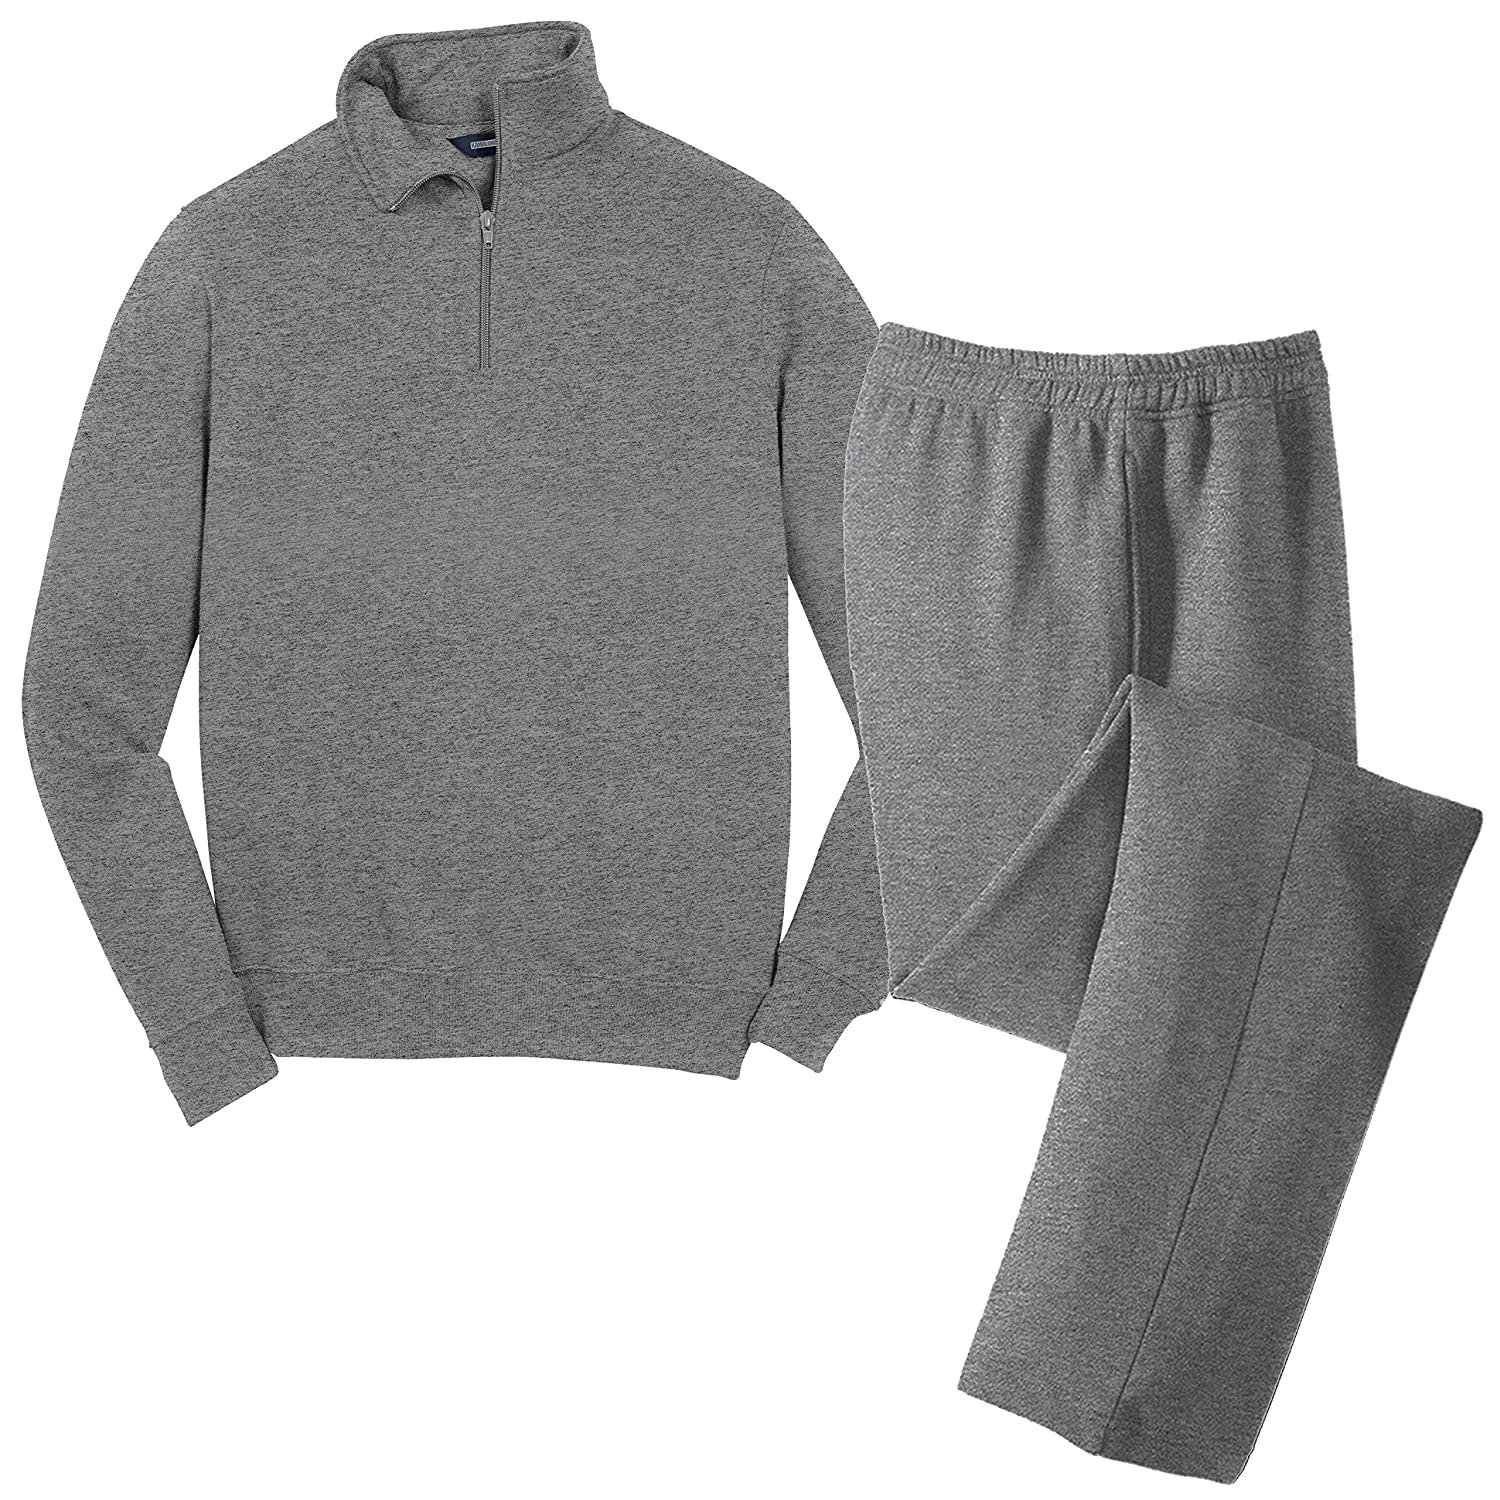 KAMAL OHAVA Men's Cotton Fleece Sweatsuit, Big